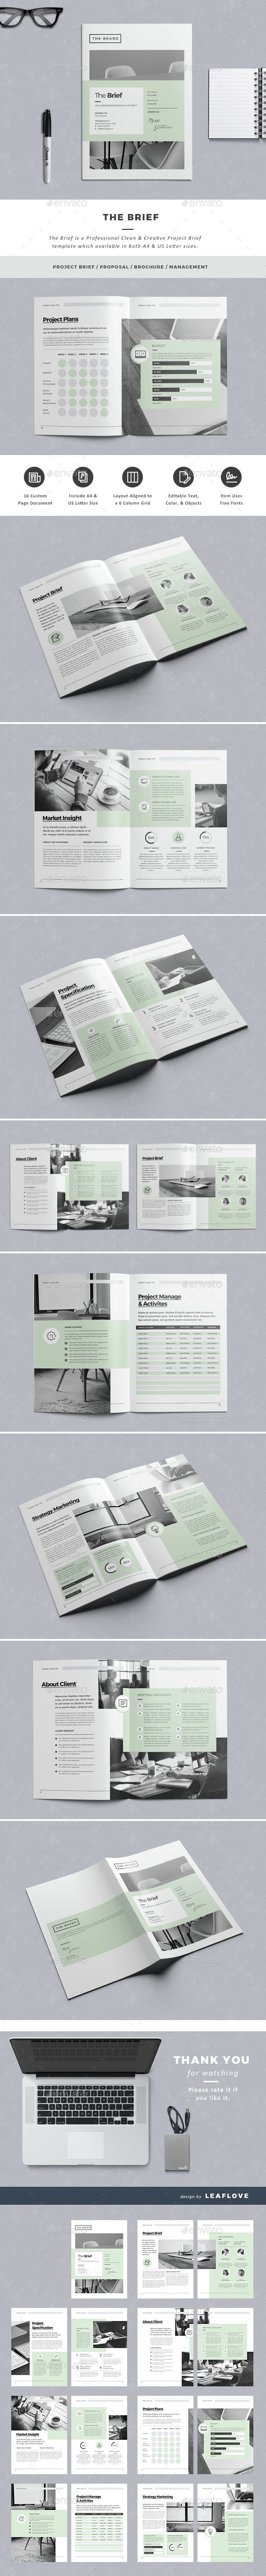 The Brief — InDesign Template #resume #template #2017 | design ...